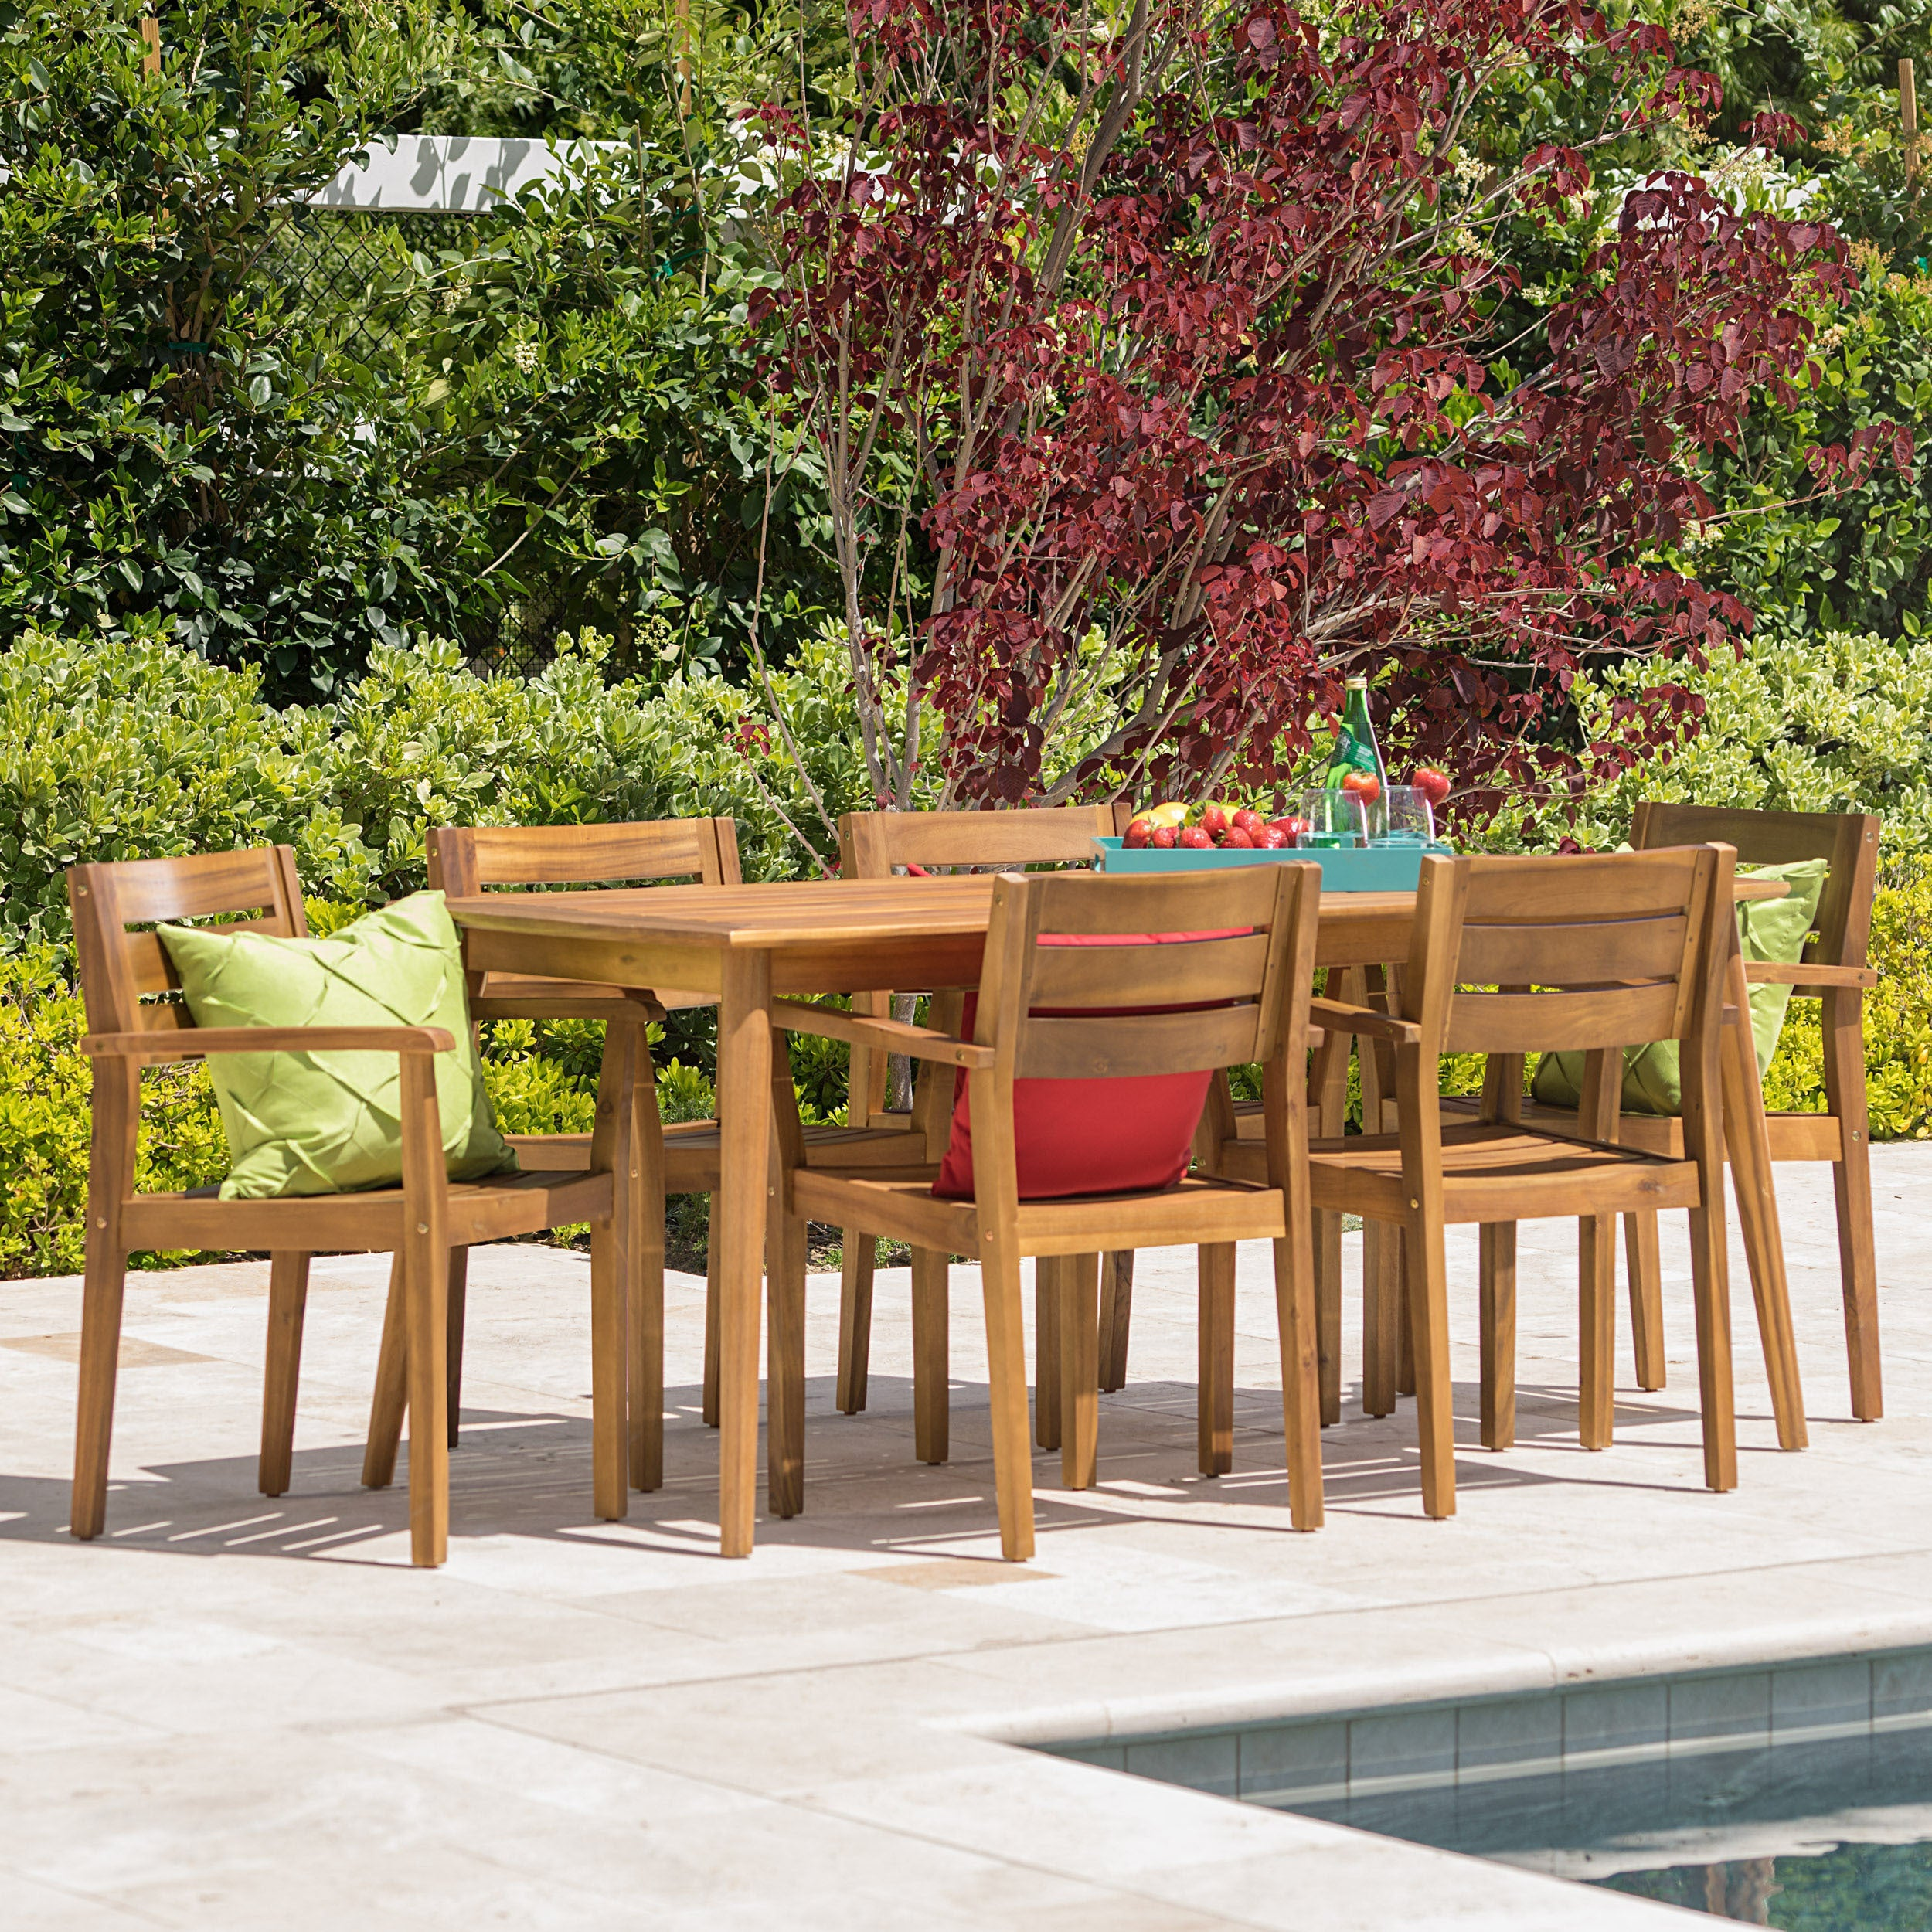 Buy Outdoor Dining Sets Online at Overstock.com | Our Best Patio ...